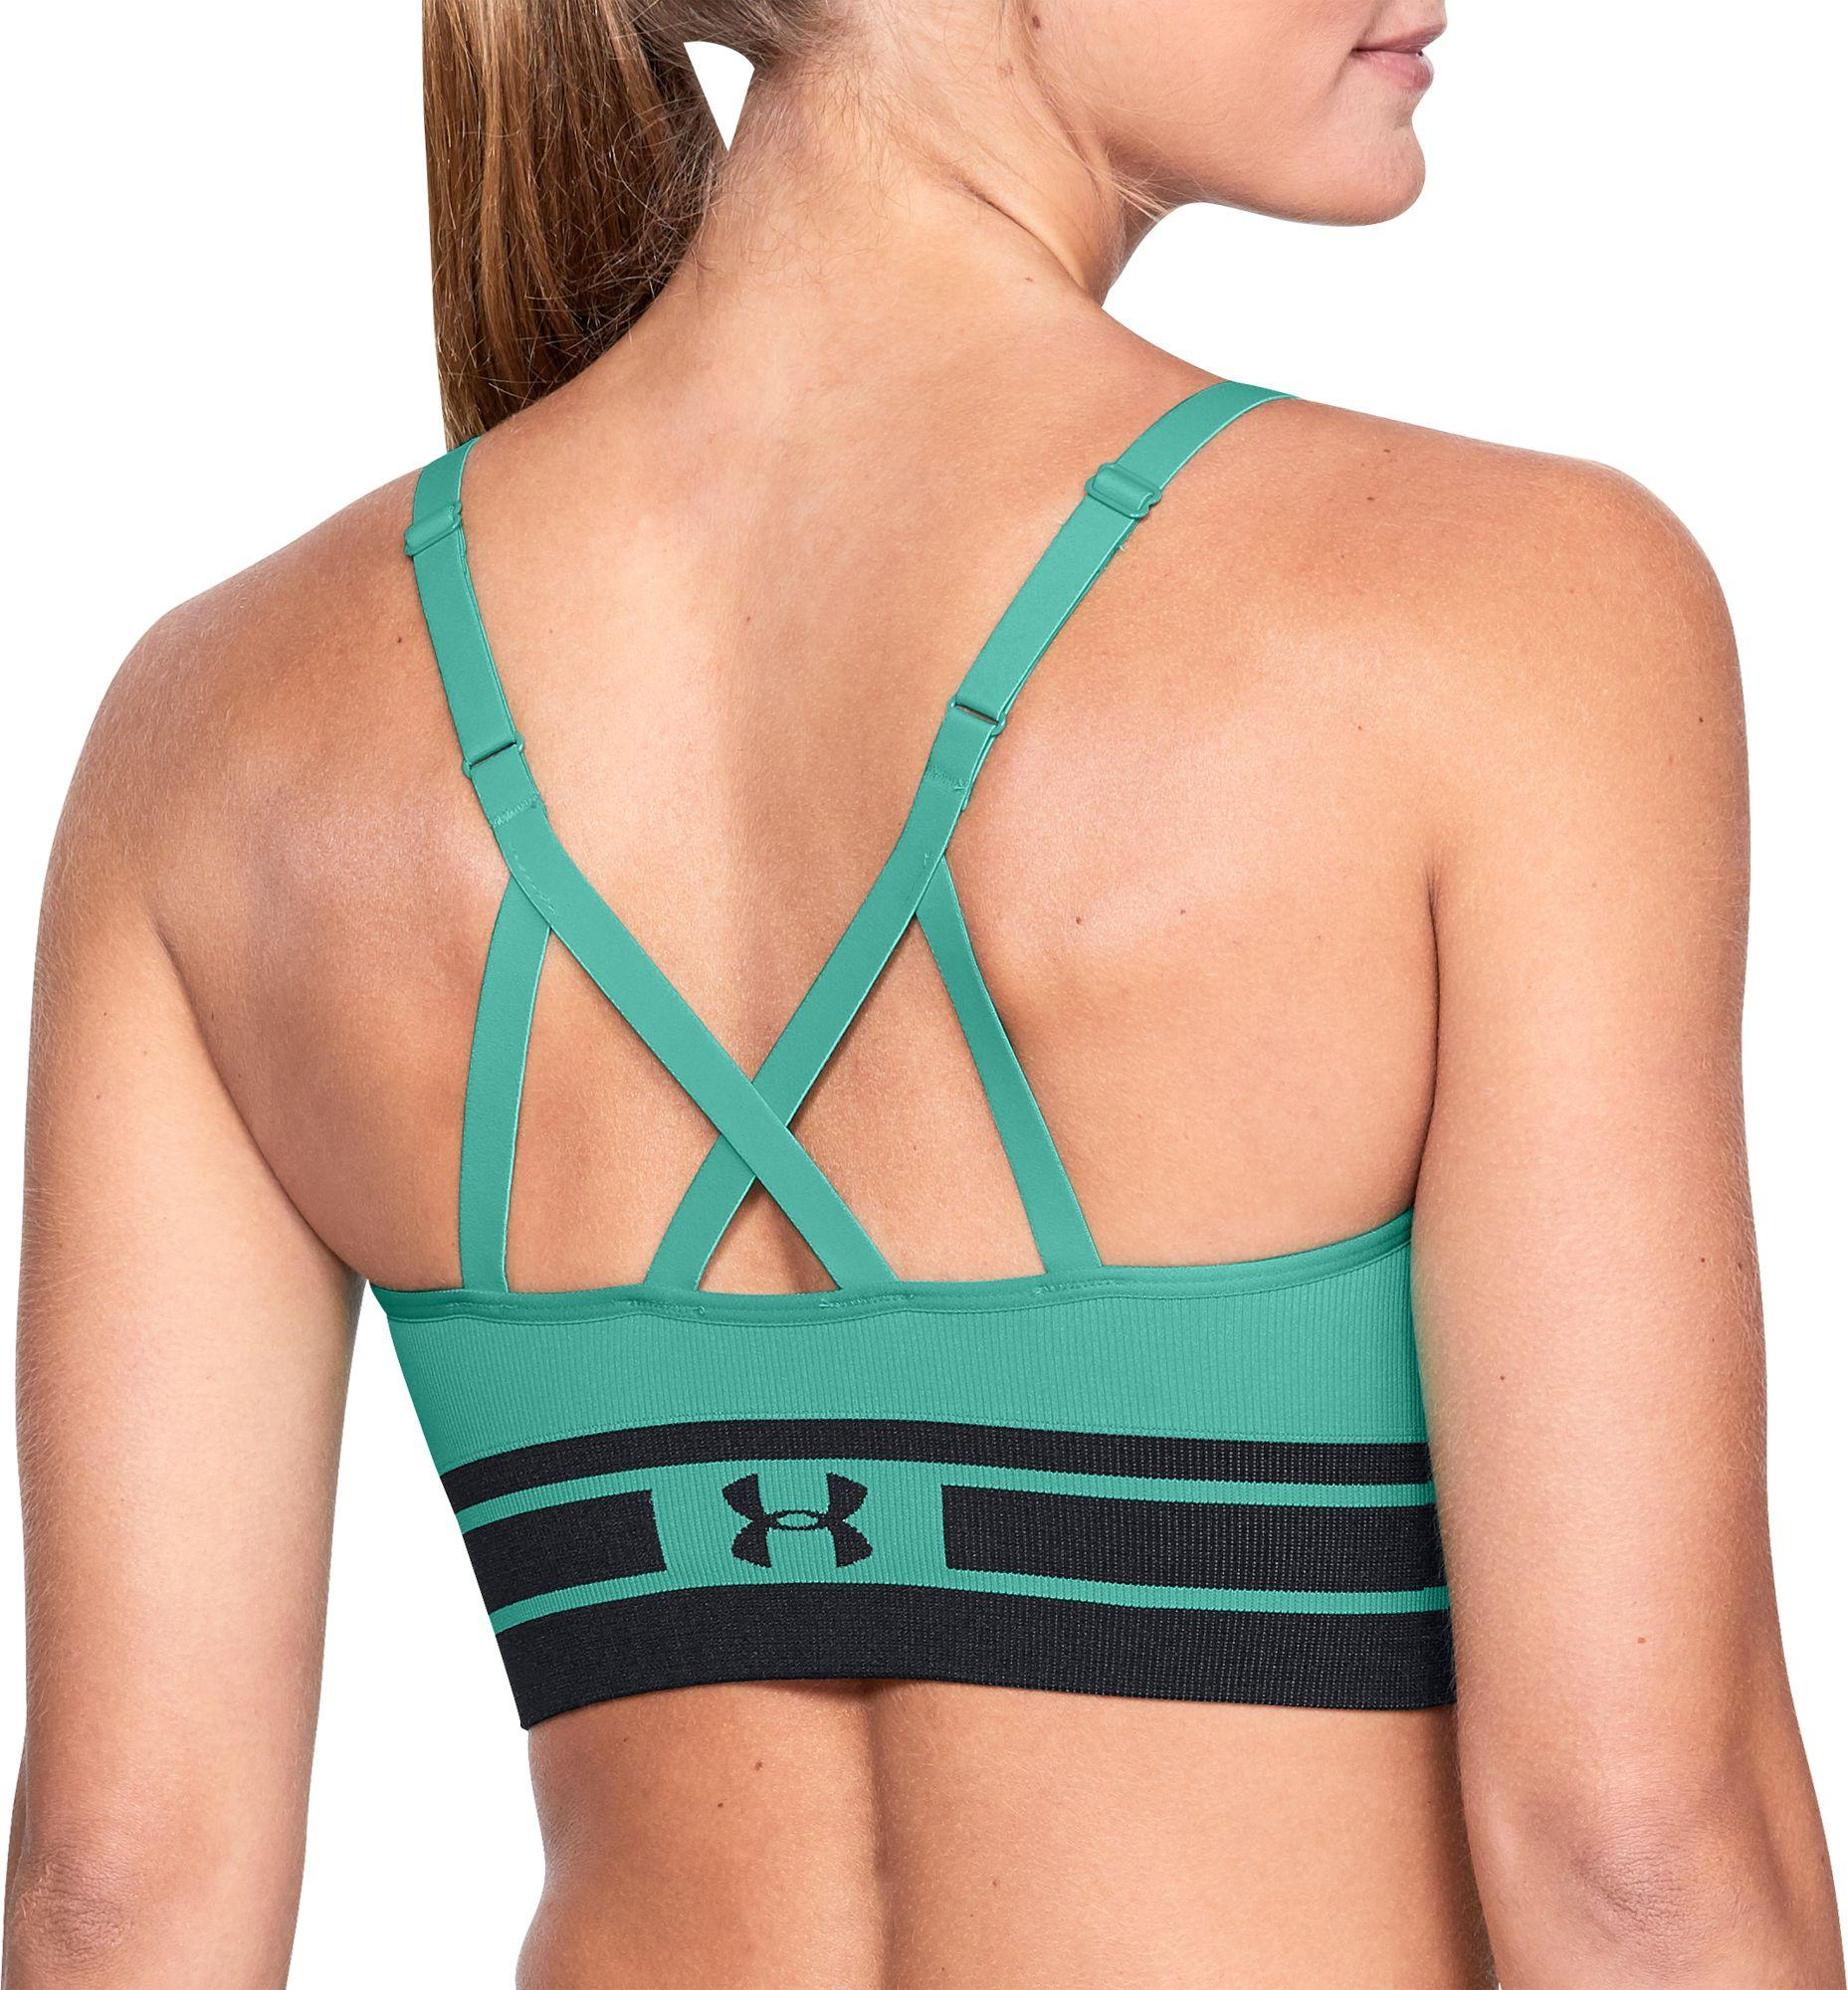 44bf2cff3d42 Lyst - Under Armour Seamless Longline Sports Bra in Green